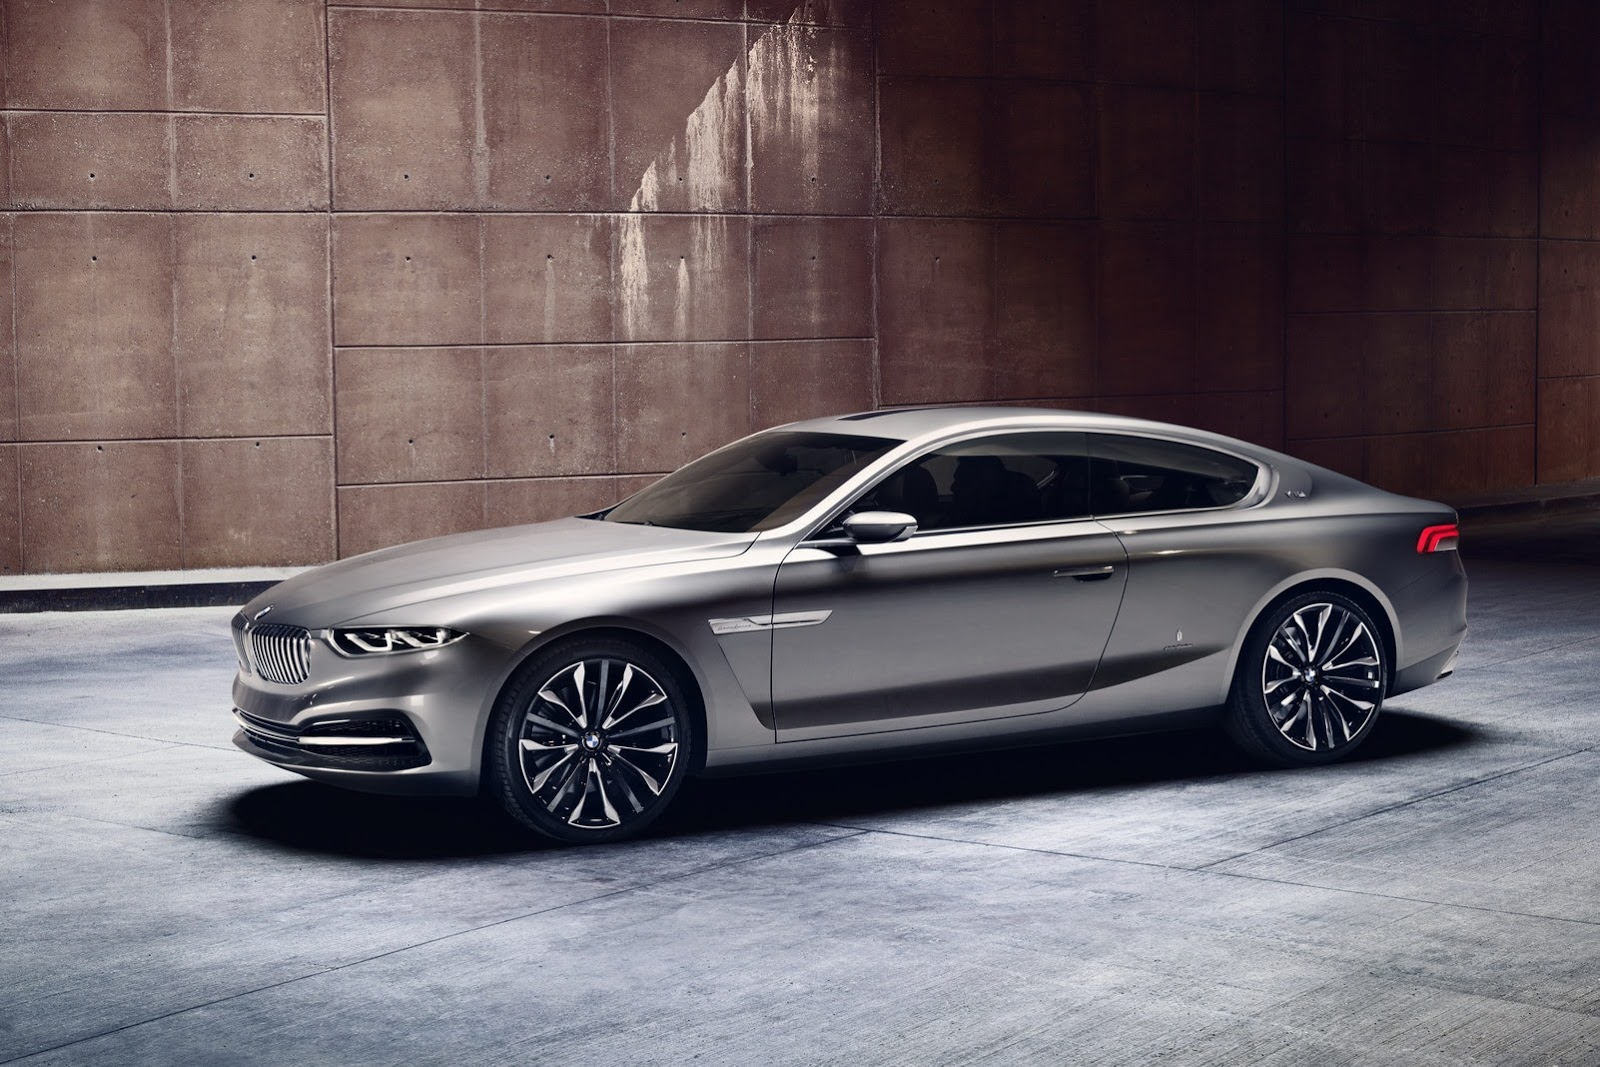 Reborn BMW 8 Series Could Come In M8 Flavor Too